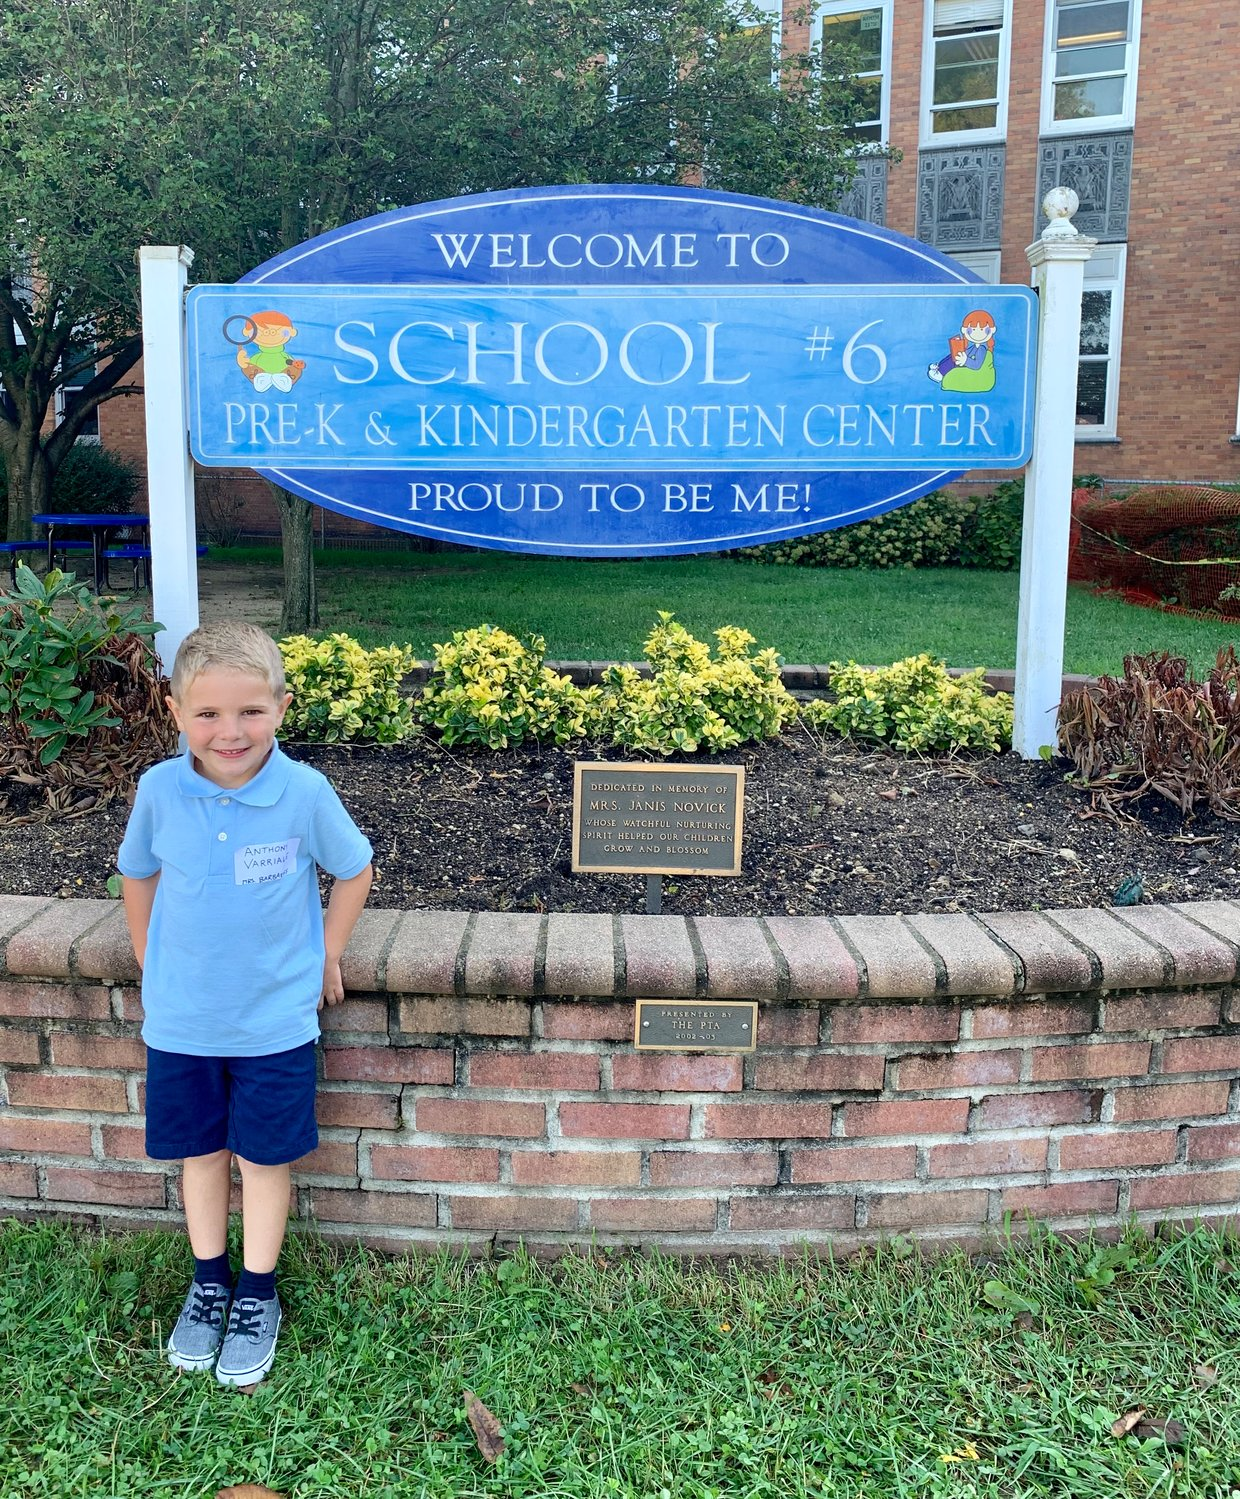 Anthony Varriale took in his surroundings on his first day of kindergarten at Oceanside School No. 6